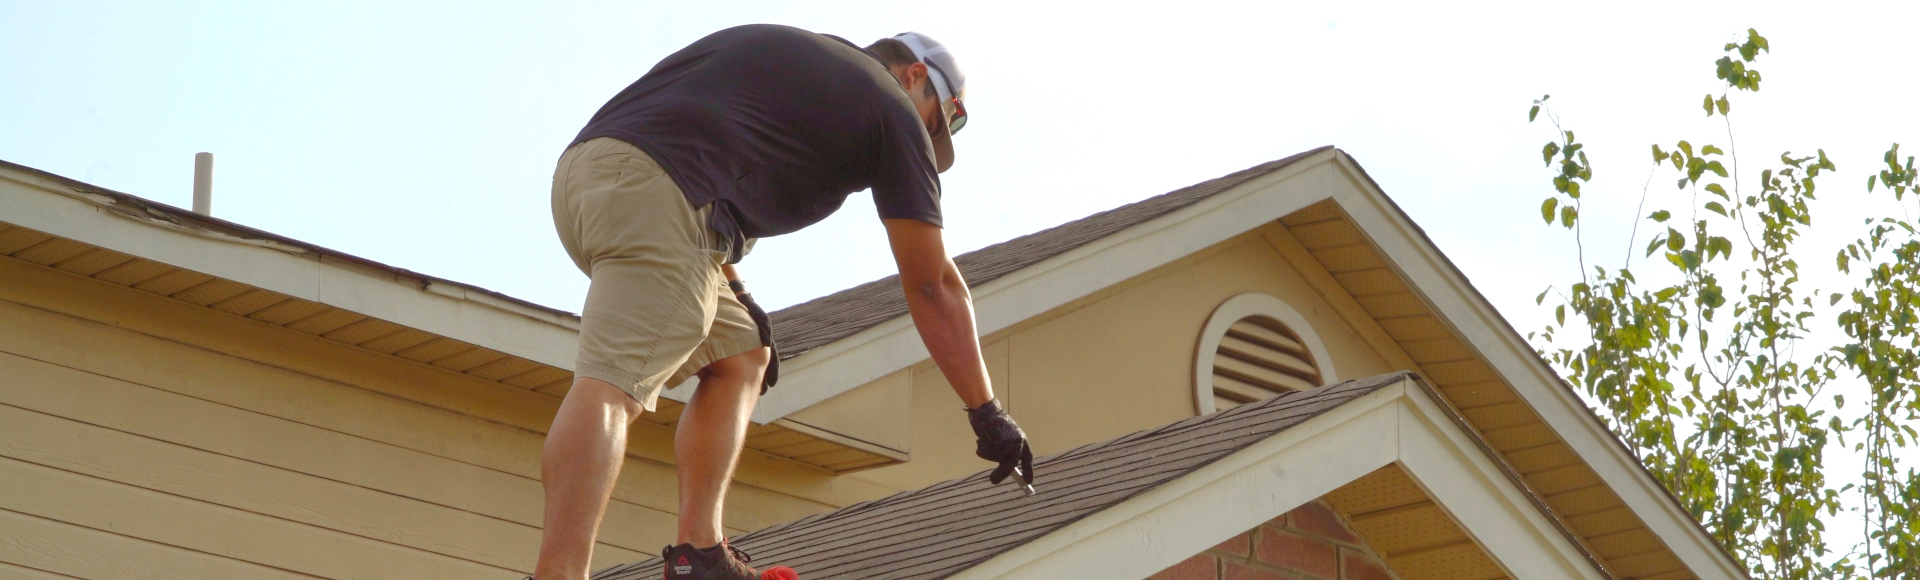 Residential Roofing Inspection | Heritage Construction Co. | Austin, Texas (512) 528-5559